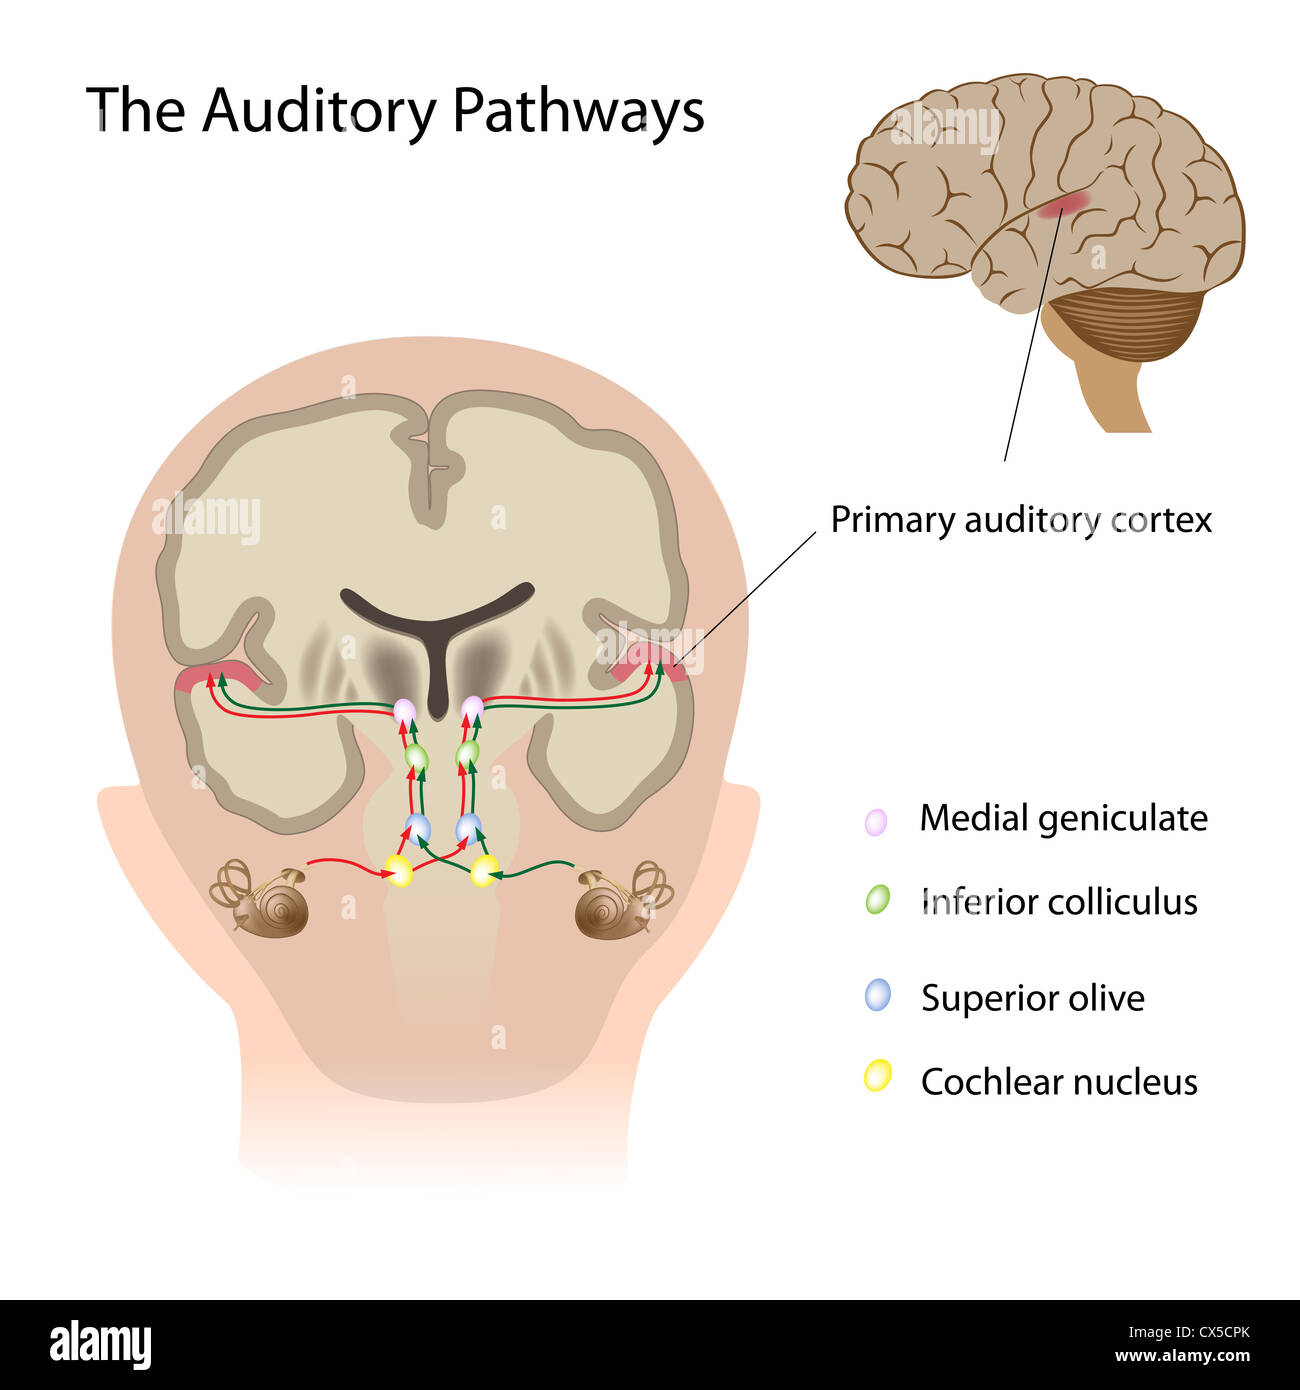 The auditory pathways - Stock Image